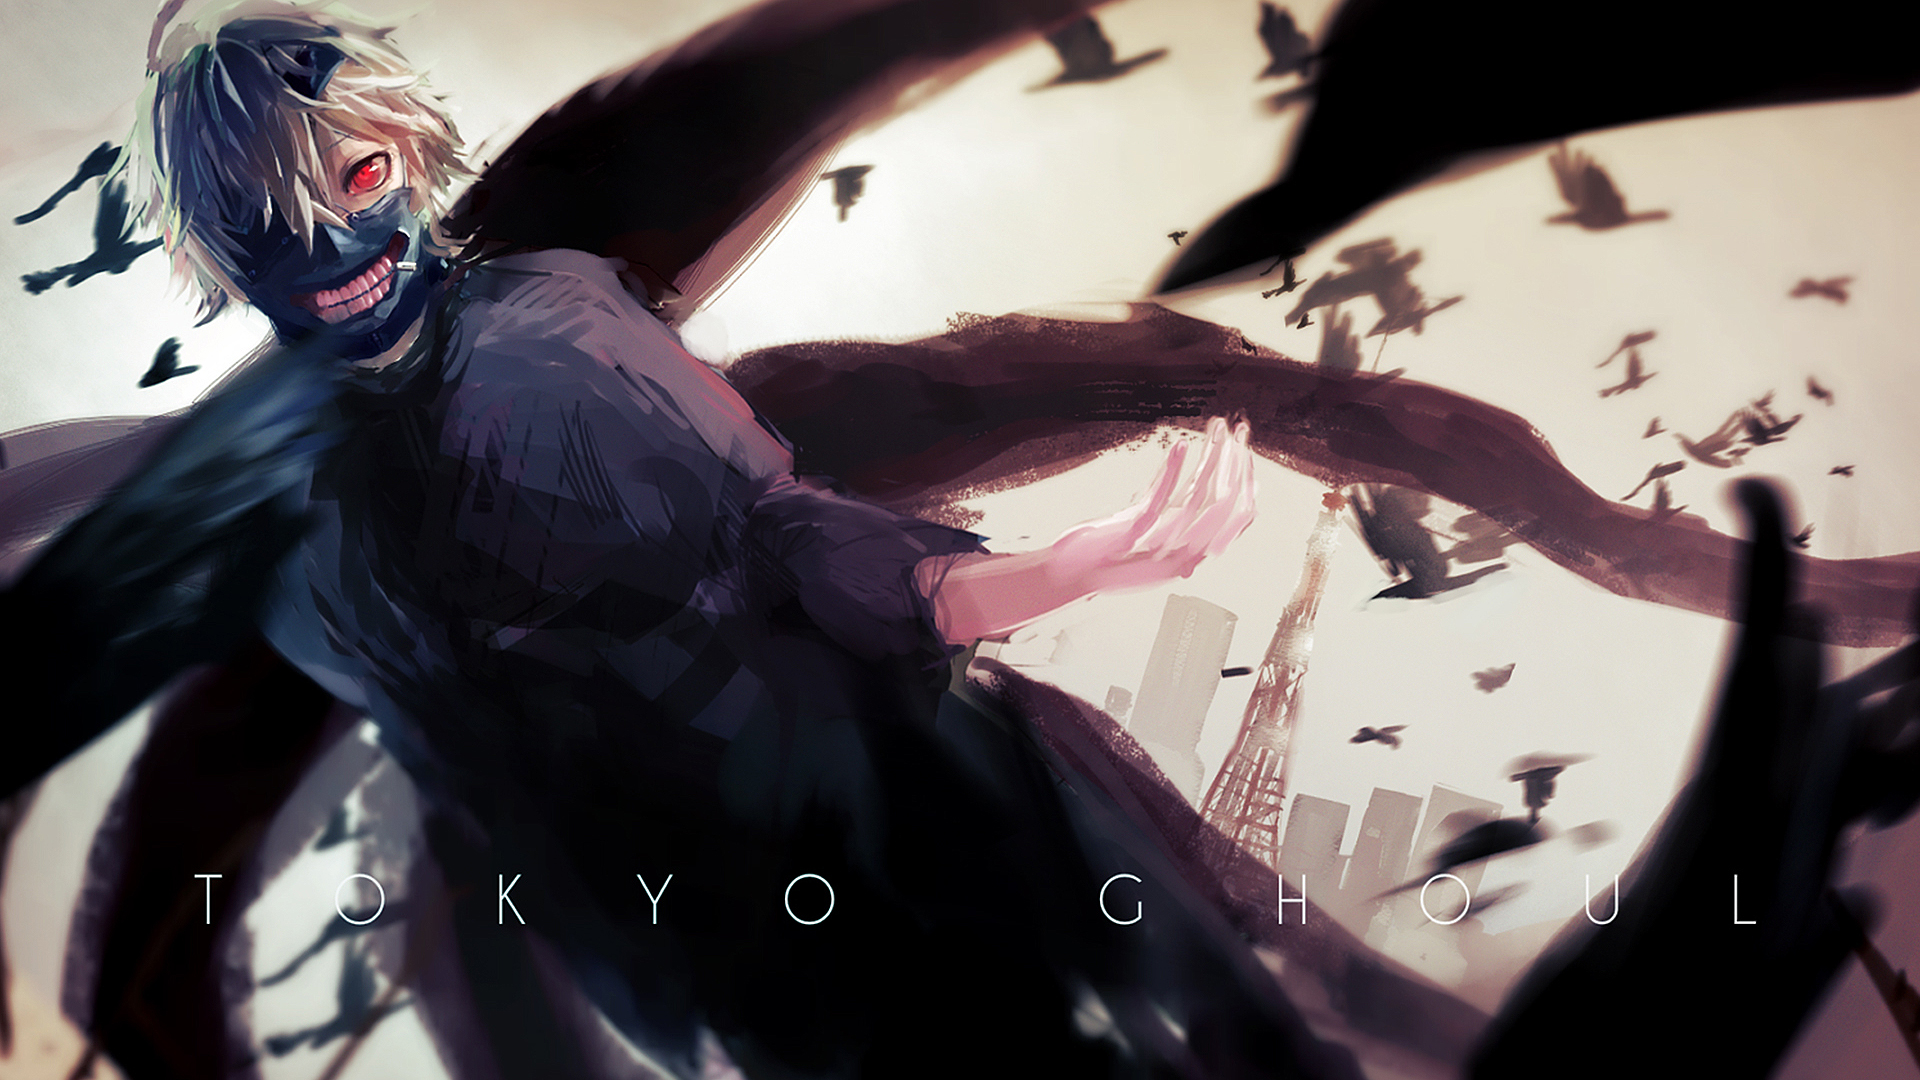 50 Tokyo Ghoul Wallpaper 1920x1080 On Wallpapersafari